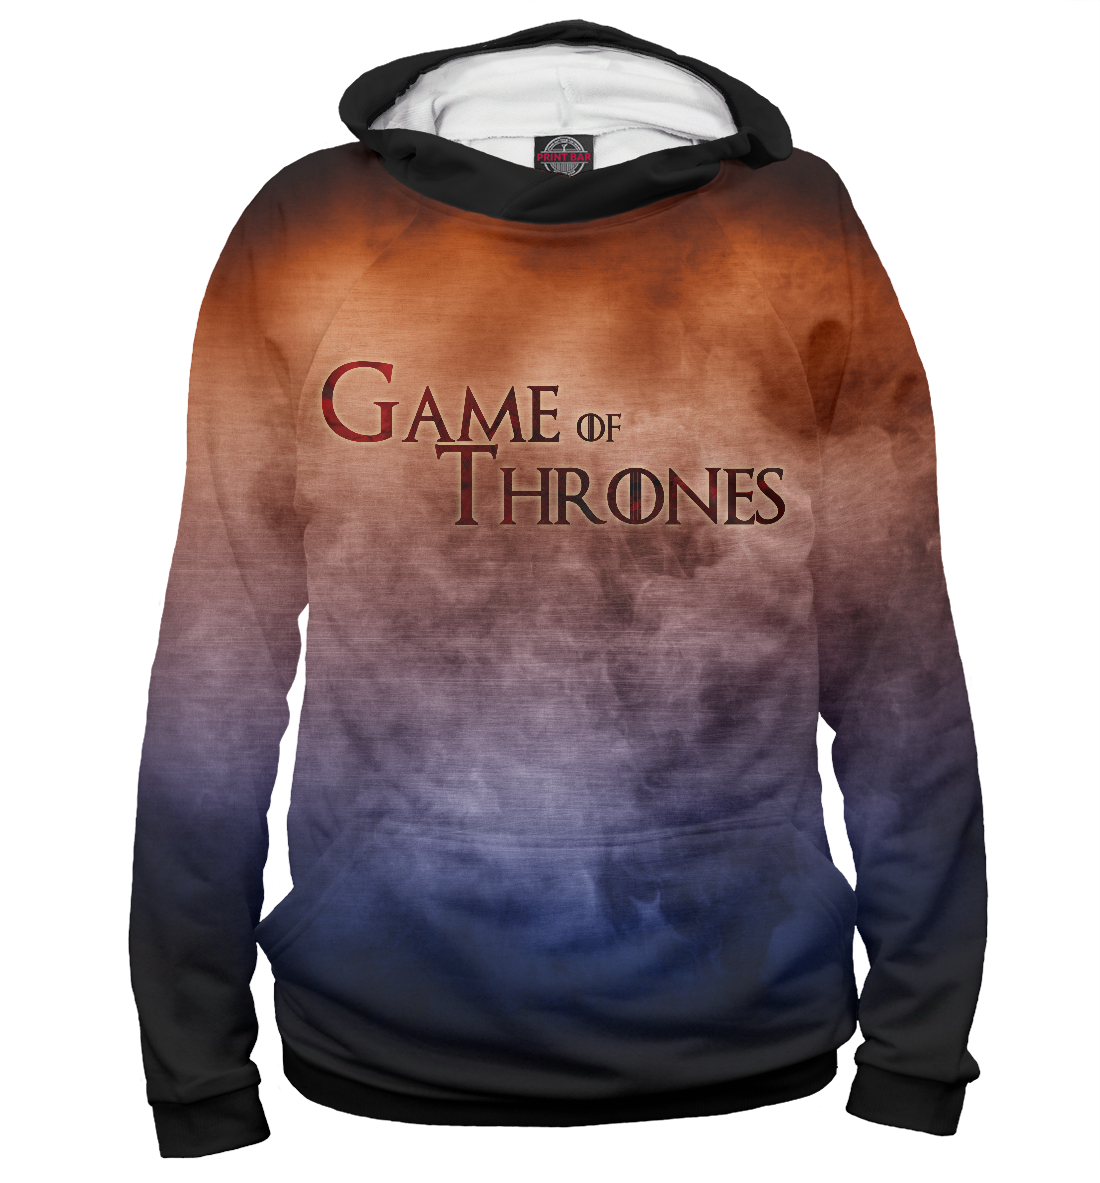 Game of Thrones martin g game of thrones